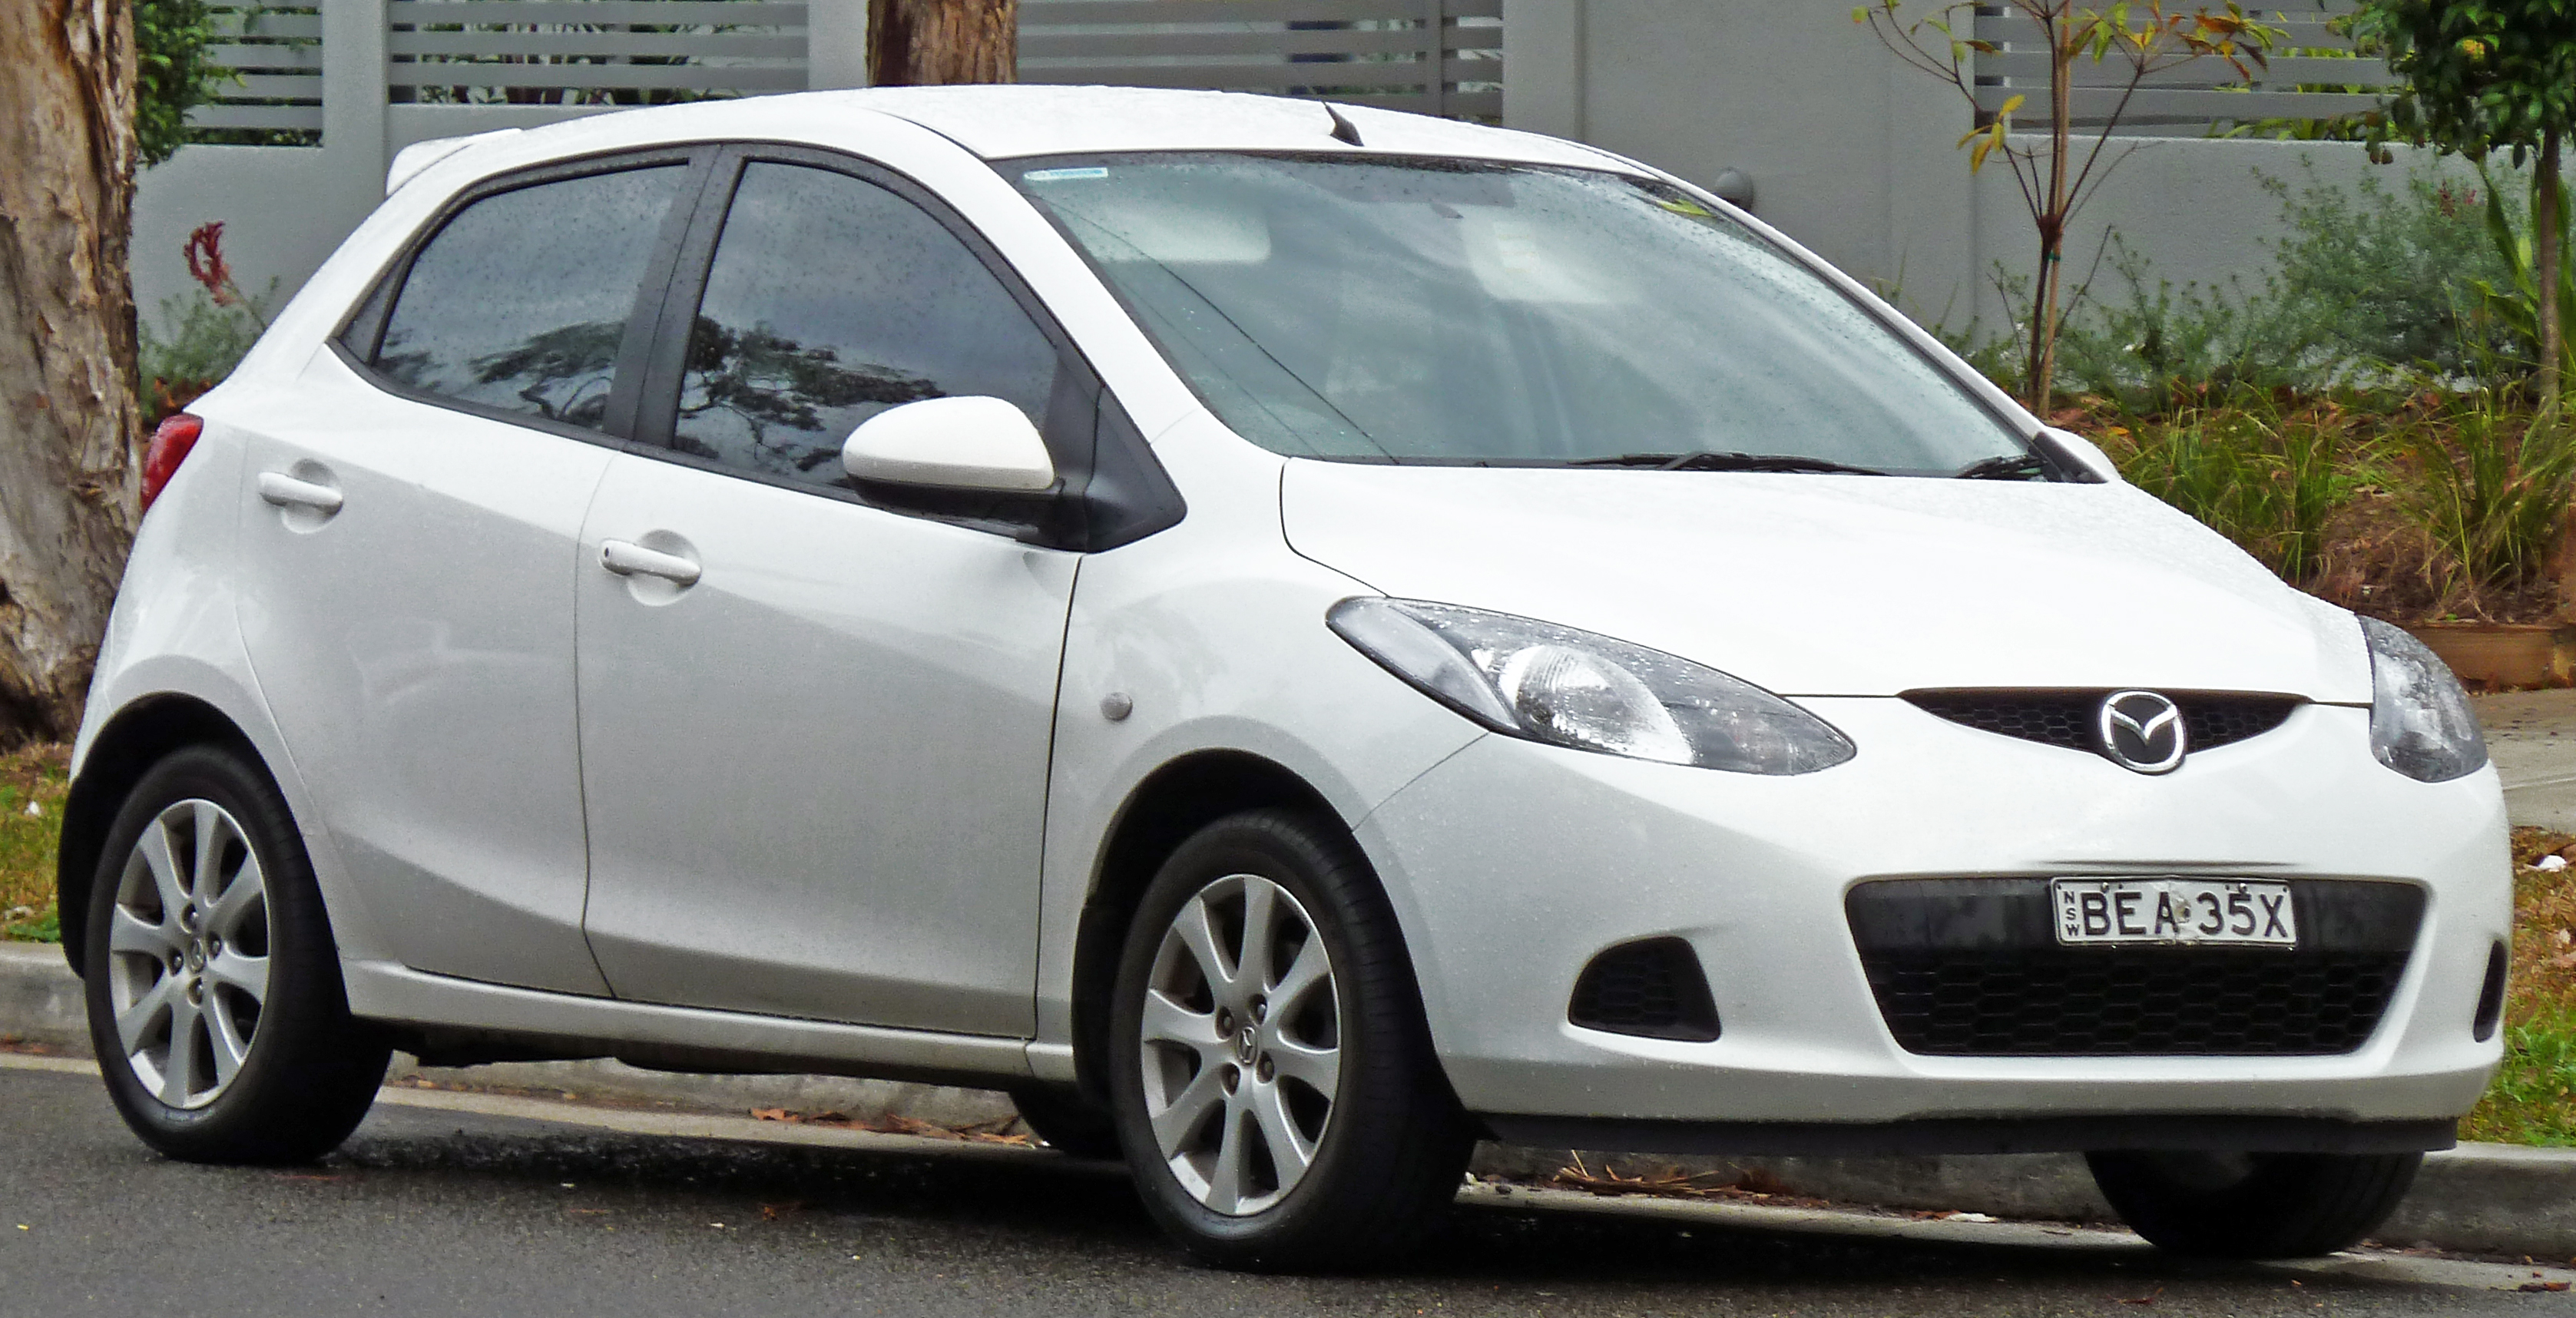 file:2007-2010 mazda 2 (de) maxx 5-door hatchback 01